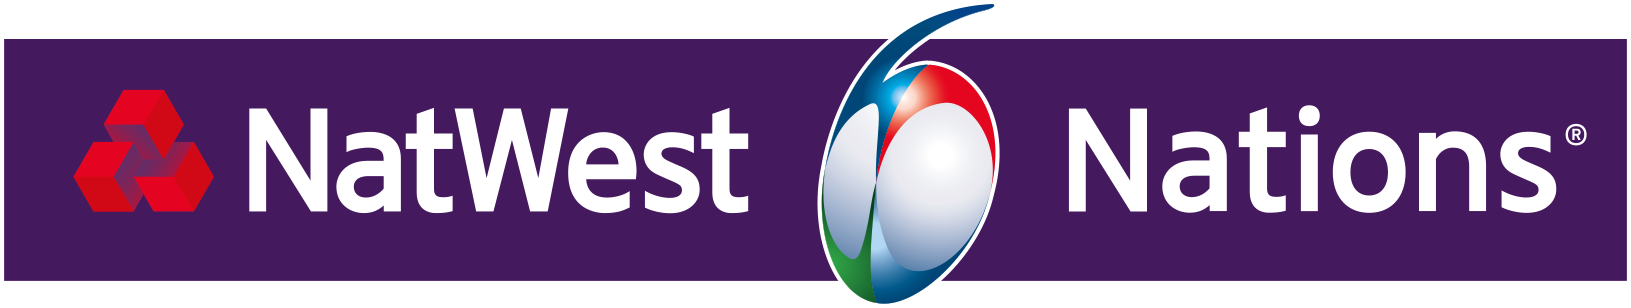 Tournoi NatWest 6 Nations | Site Officiel